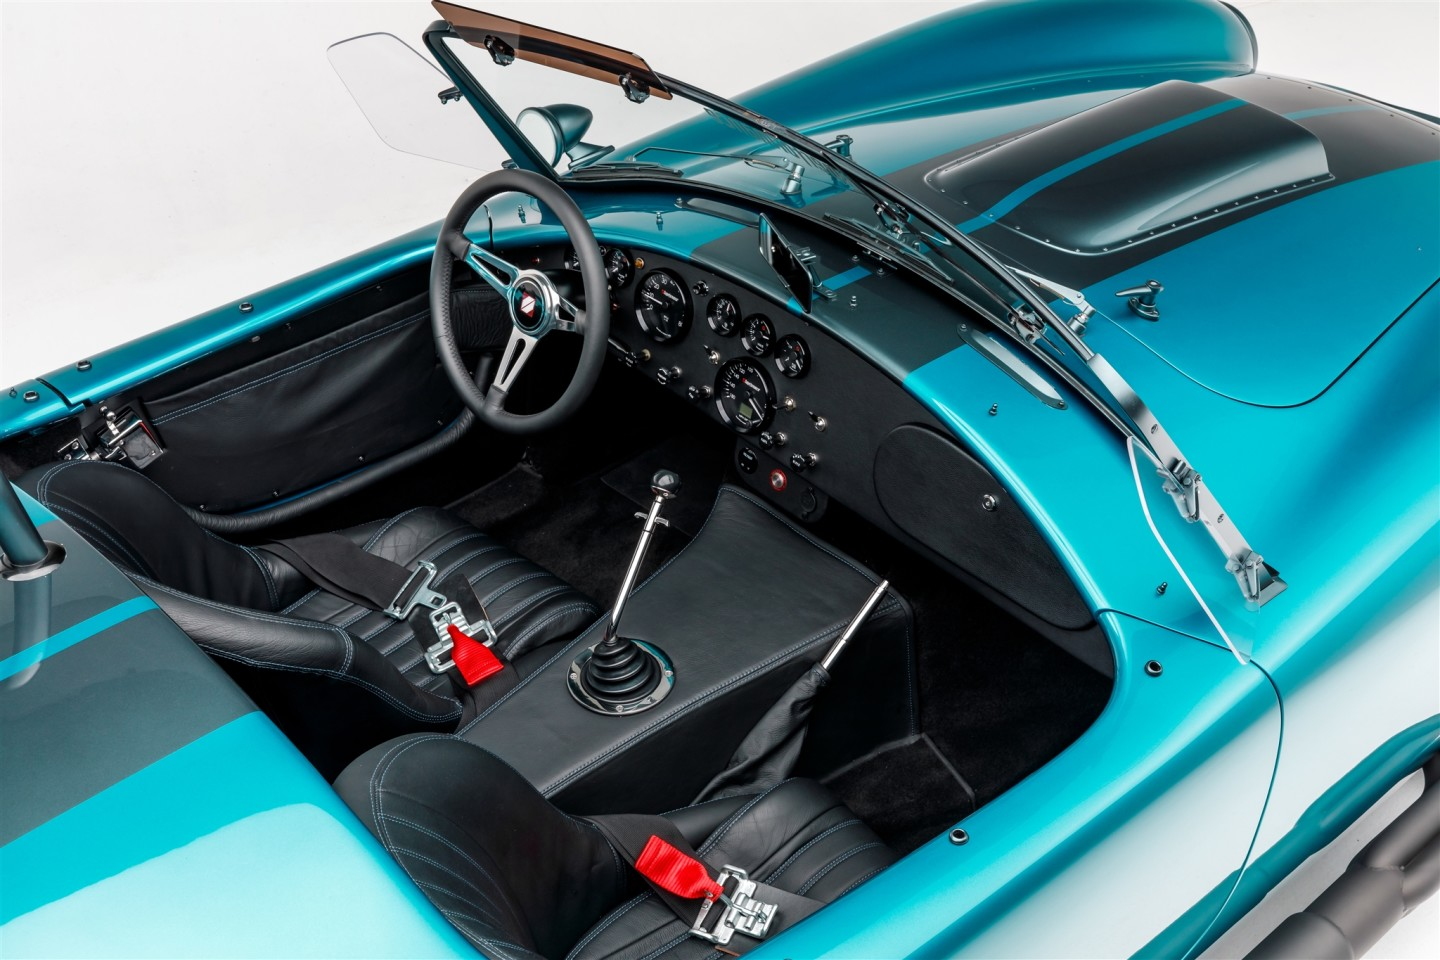 The interior receives some body-matched stitching, electronic gauges and added leather